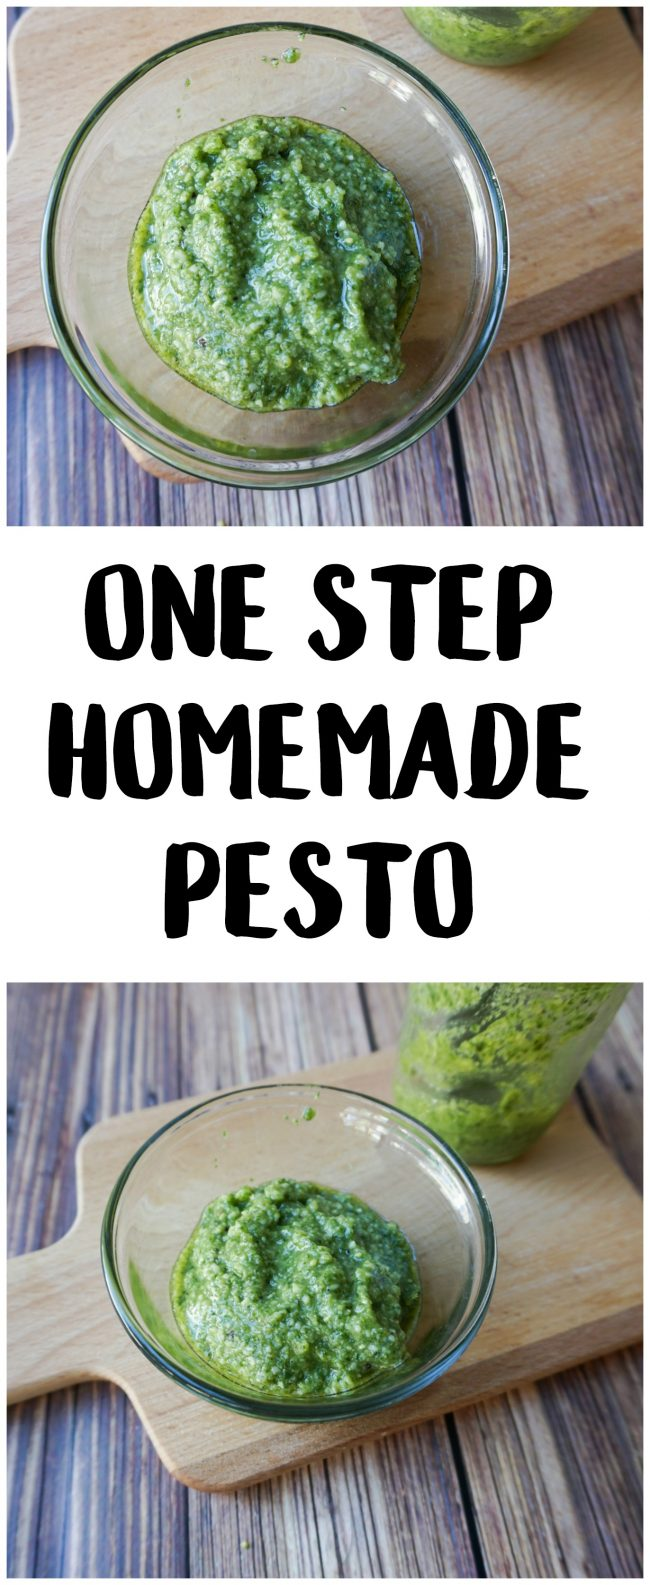 Pesto is a delicious sauce featuring fresh basil that you can use on all kinds of dishes, including chicken, pasta, risotto, and even pizza! This easy homemade pesto recipe shows you how to get fresh and delicious pesto in just one step!